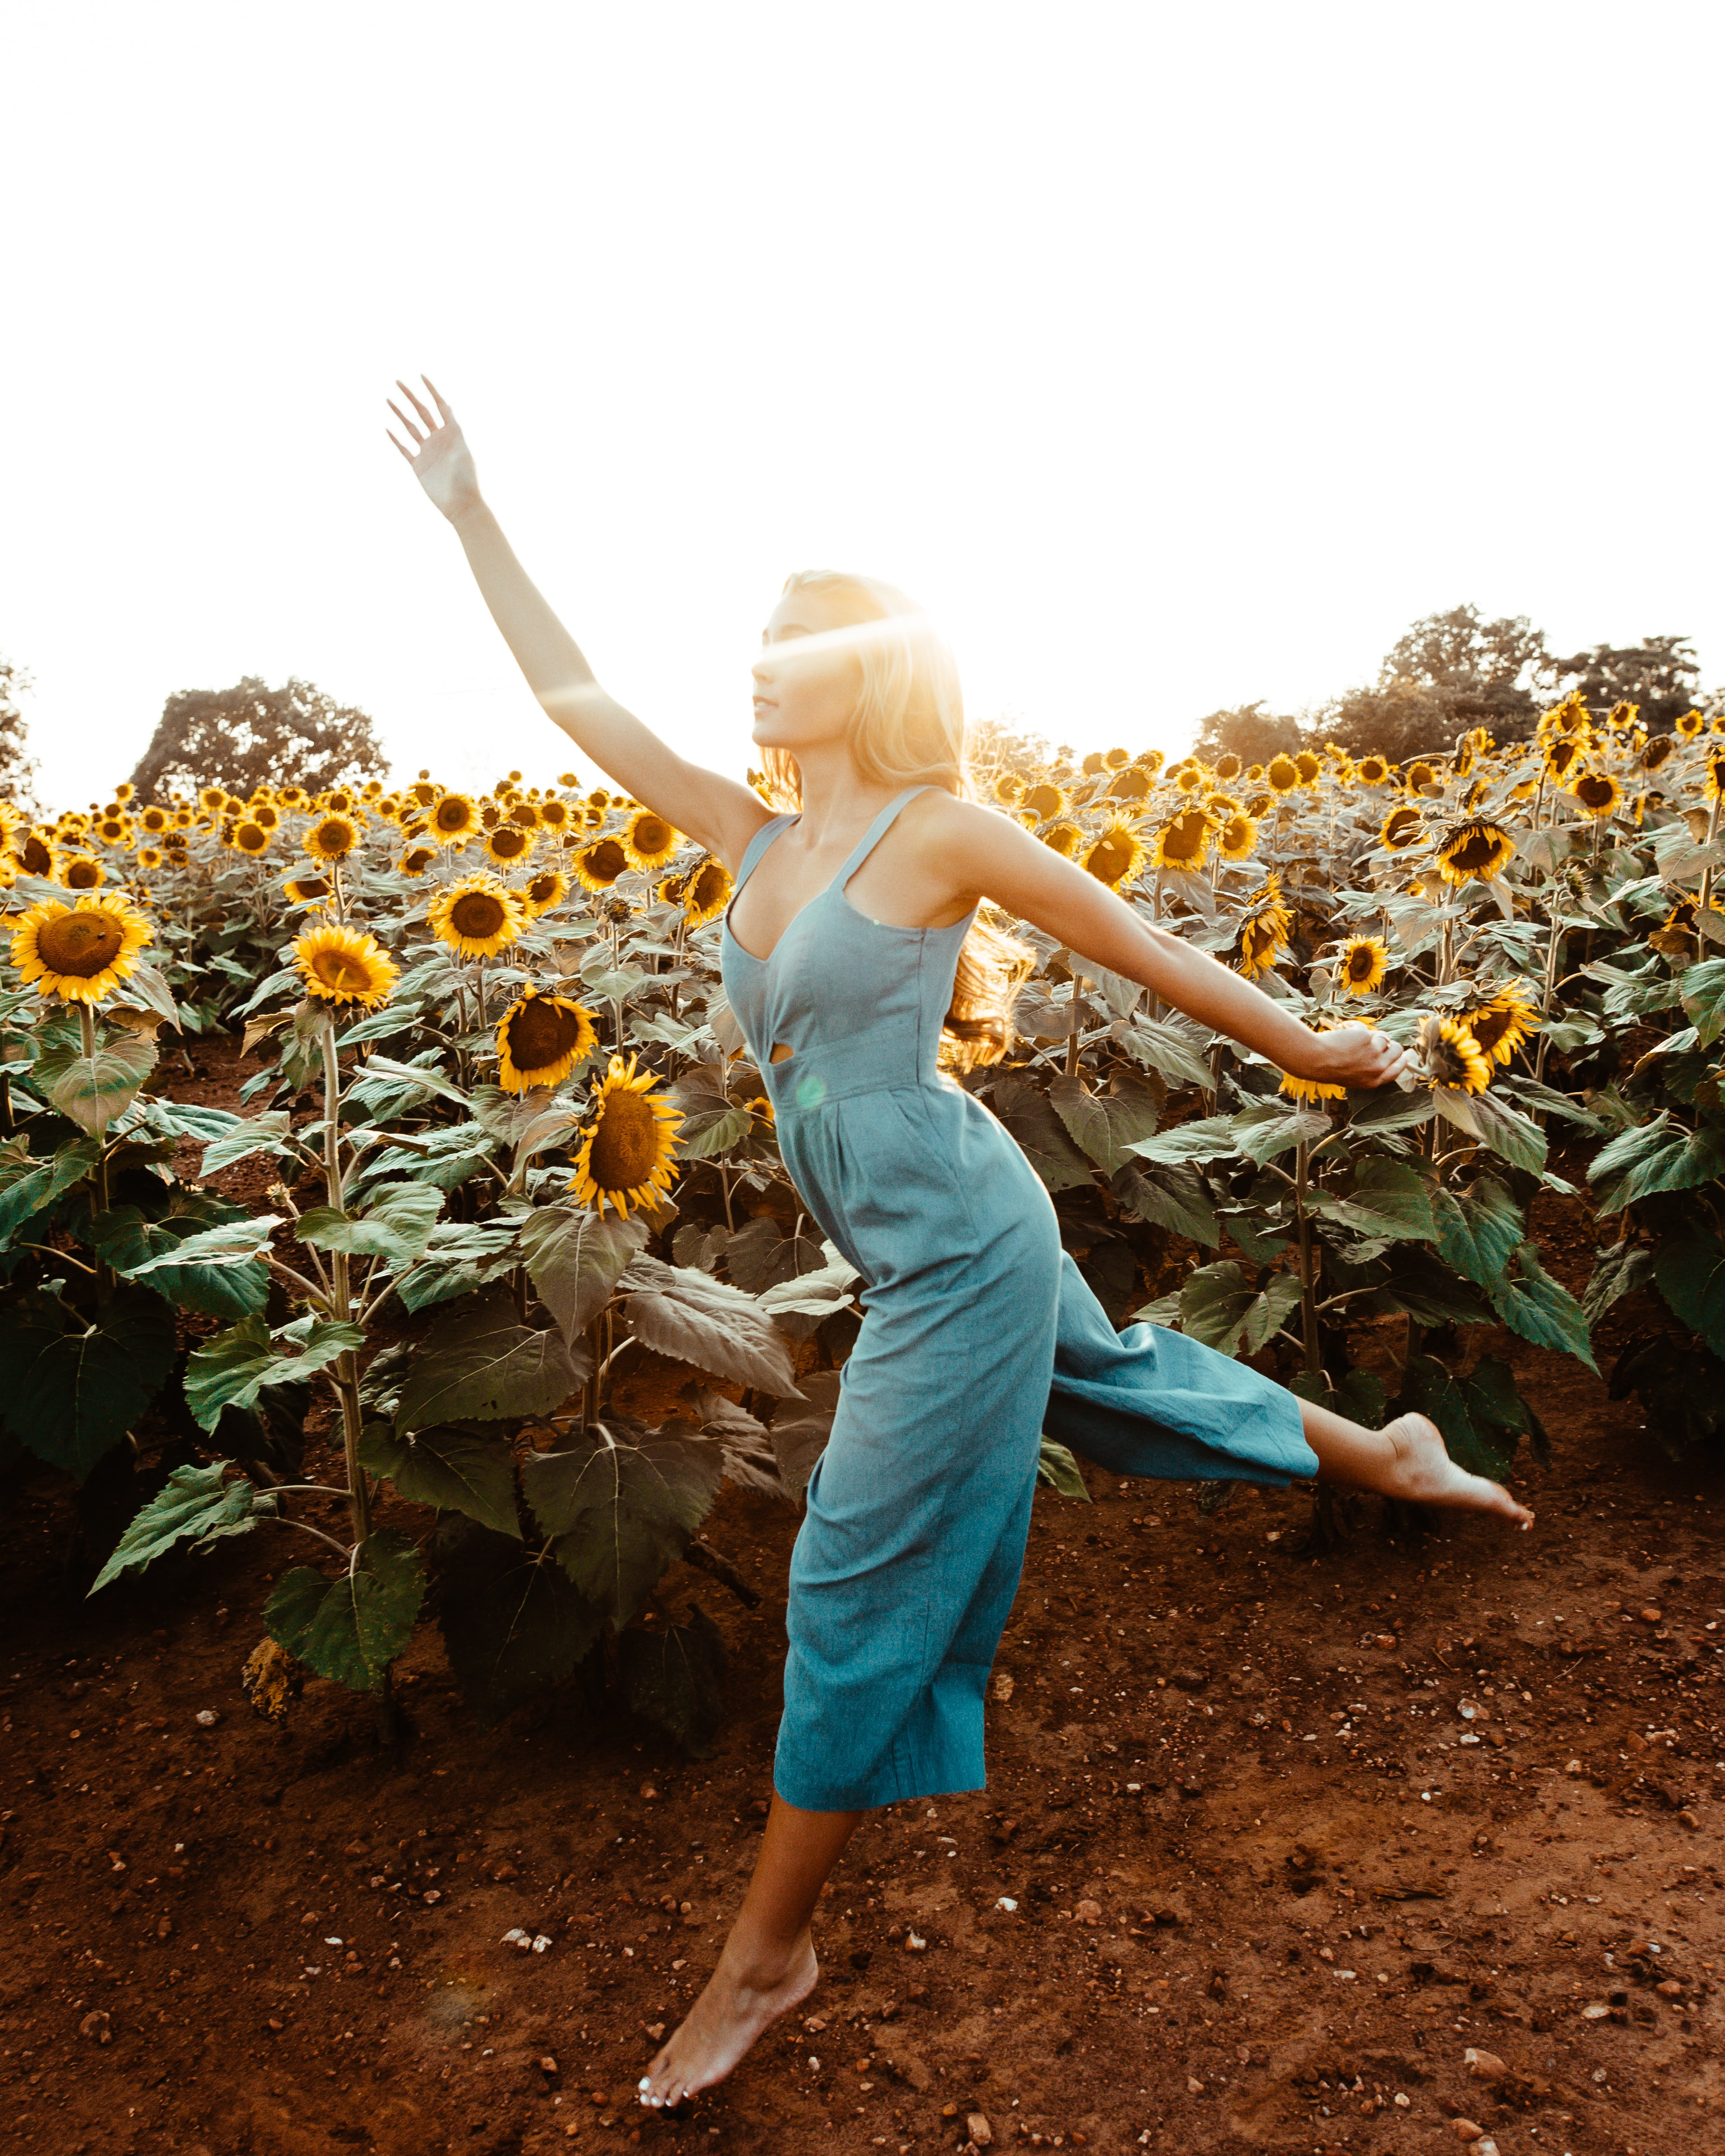 woman wearing green sleeveless rompers standing and waving hands near garden of sunflower at daytime